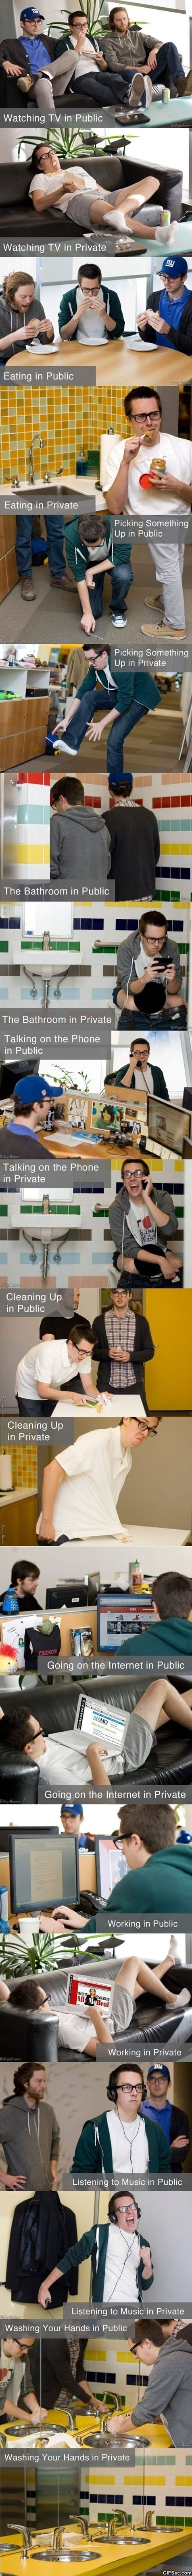 Funny Pictures - Being With People vs. Being Alone